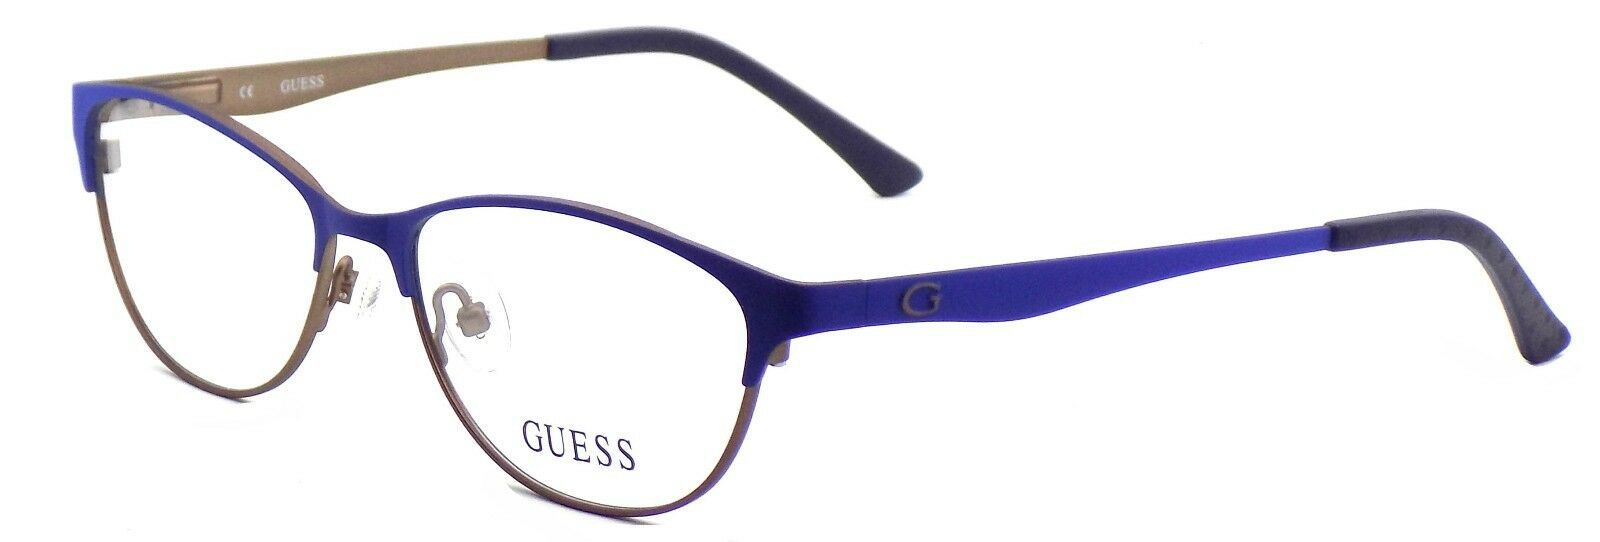 Primary image for GUESS GU2504 091 Women's Eyeglasses Frames 53-15-135 Matte Blue / Brown  + CASE